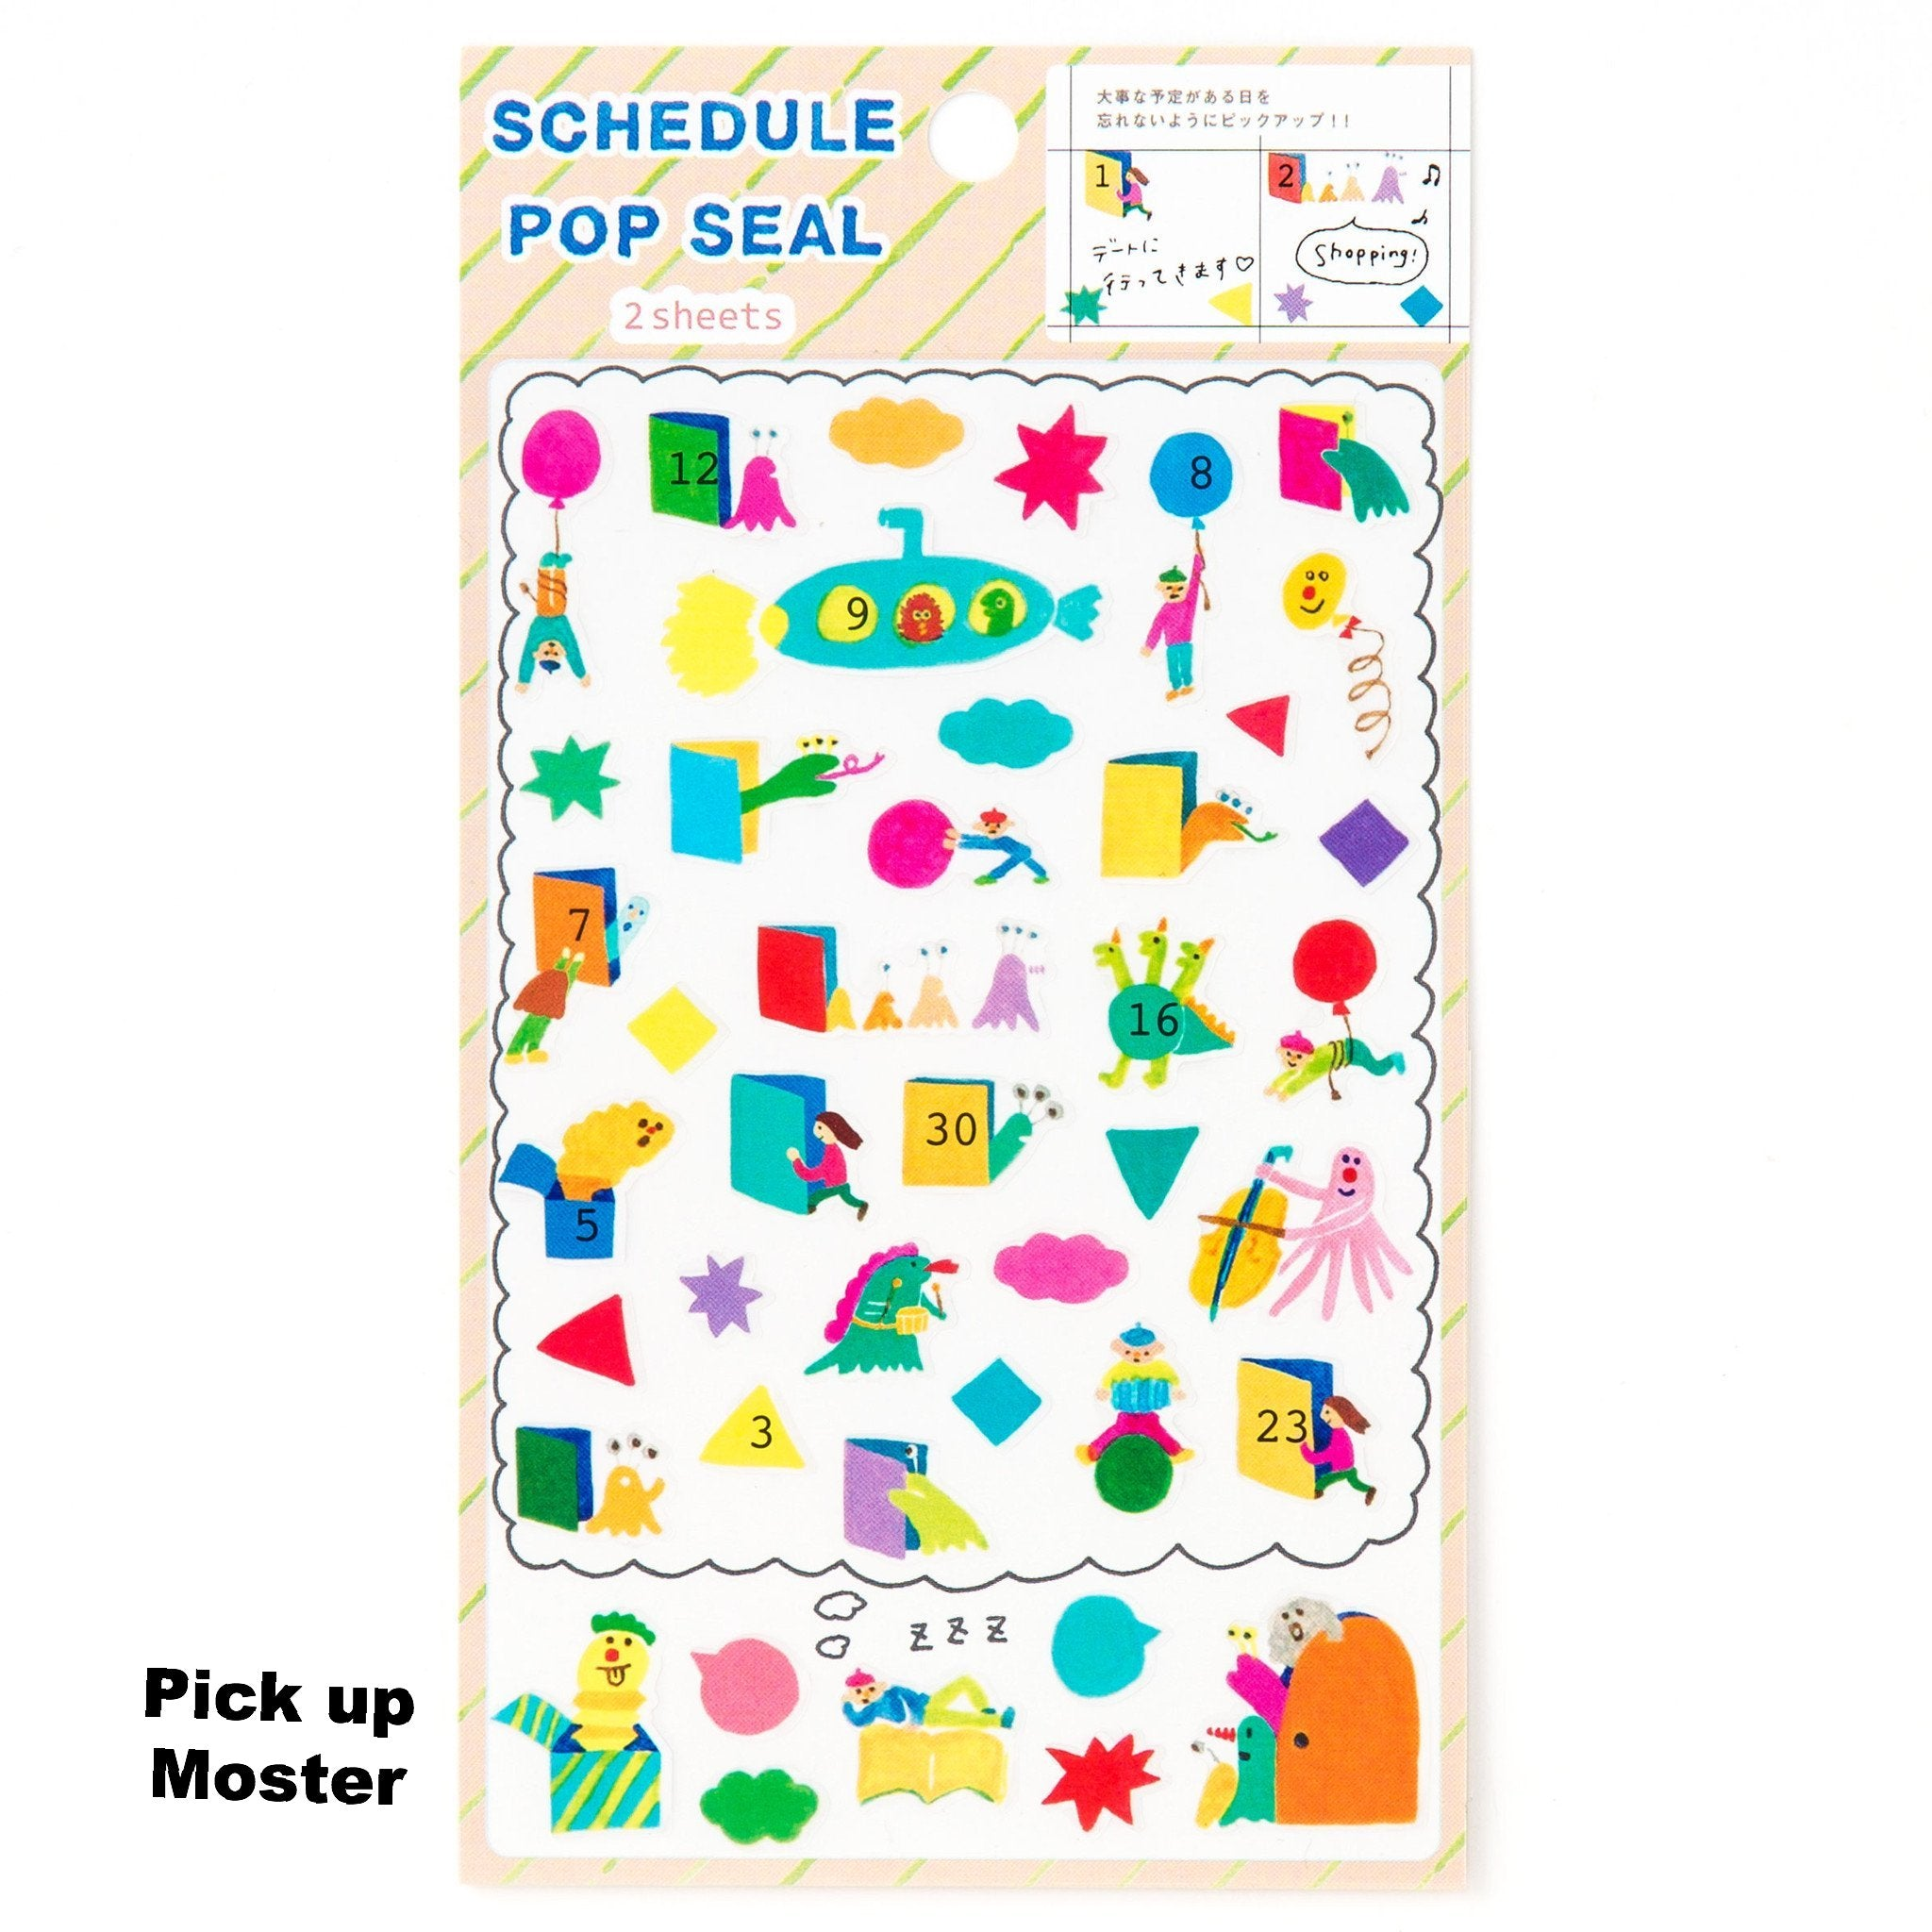 AIUEO Schedule Pop Seals Series (2pcs)